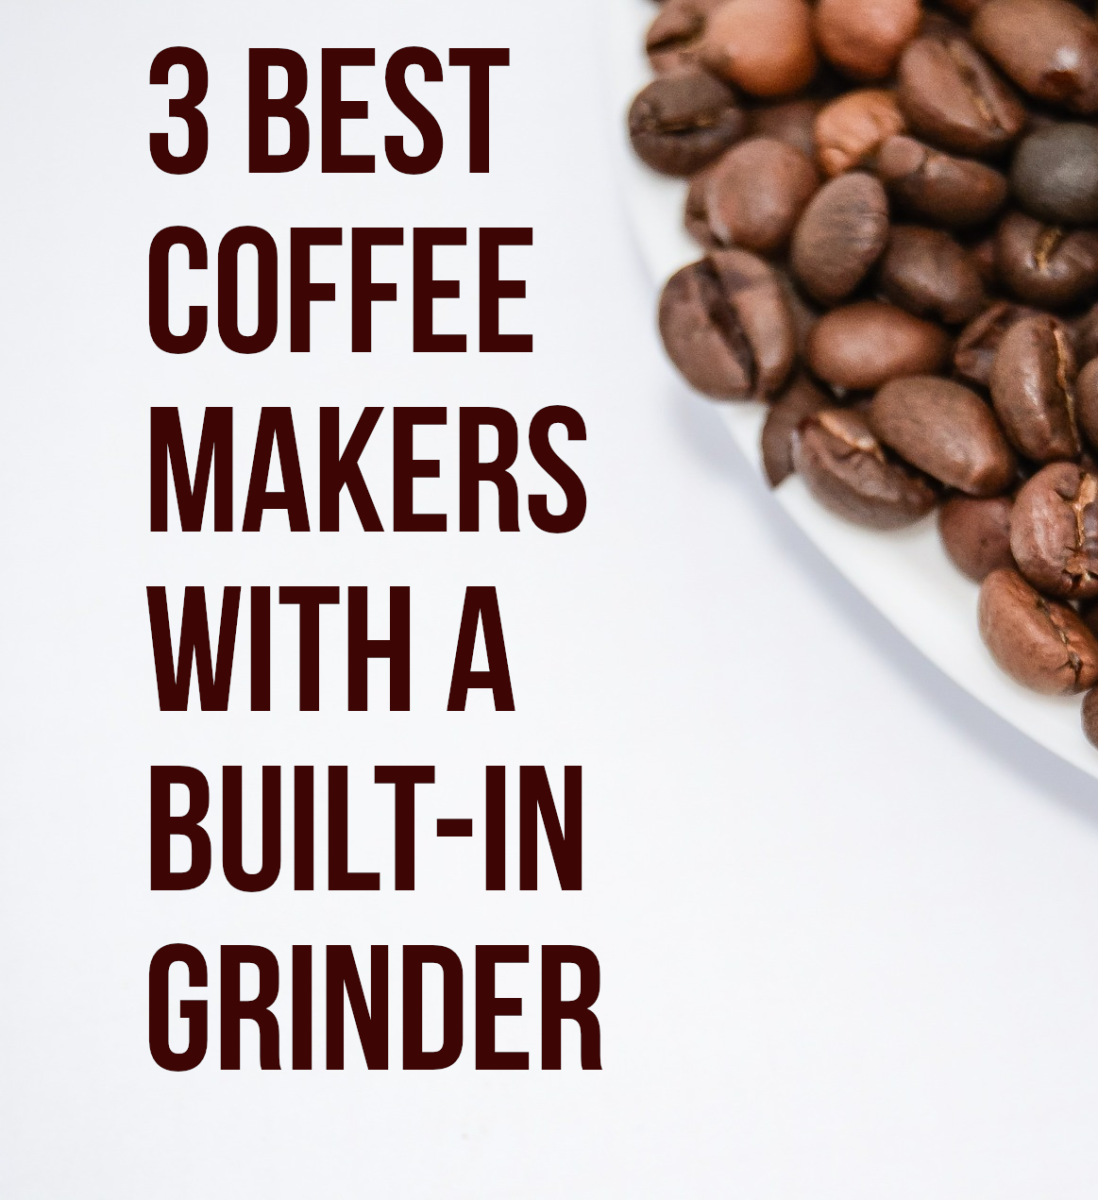 2020's 3 Best Coffee Makers That Have a Built-In Grinder